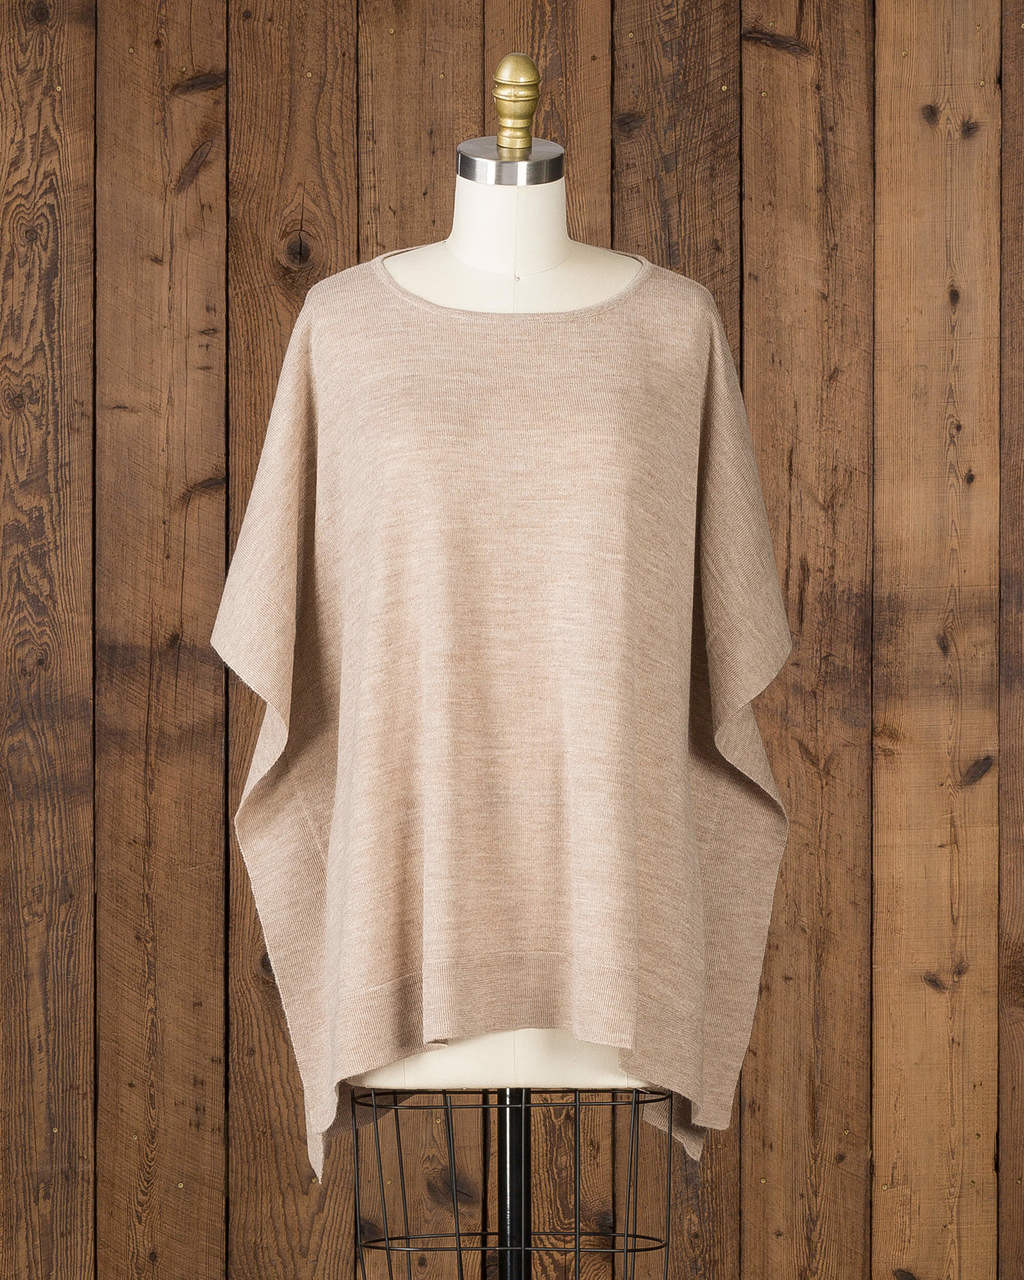 alicia adams alpaca jamie sweater, luxury womens sweater, 100% baby alpaca, womens loose alpaca sweater, women's plus size alpaca sweater, luxury sweater, tan, camel, taupe alpaca sweater, alpaca apparel, sustainable fashion, softer than cashmere,  ecofriendly alpaca sweater